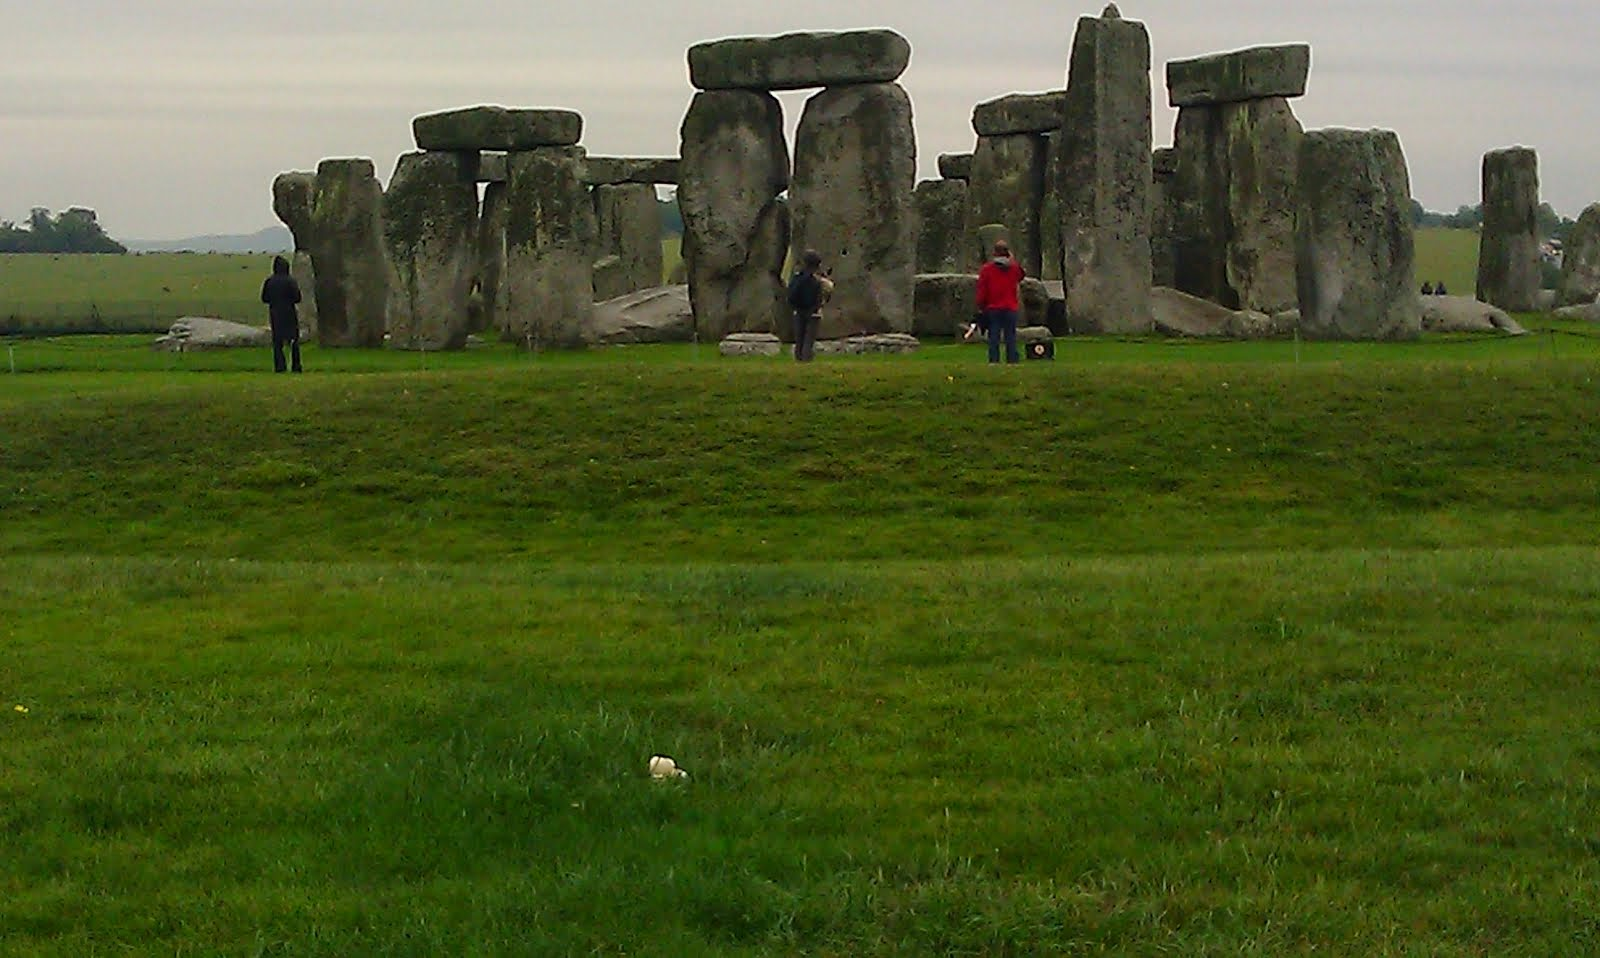 stonehenge mysterious and famous archaeological site Stonehenge is perhaps the most famous, mysterious and architecturally sophisticated prehistoric monument in the world this massive stone structure is believed to have been constructed somewhere between 3000 bc to 2000 bc, making it over 5000 years old.